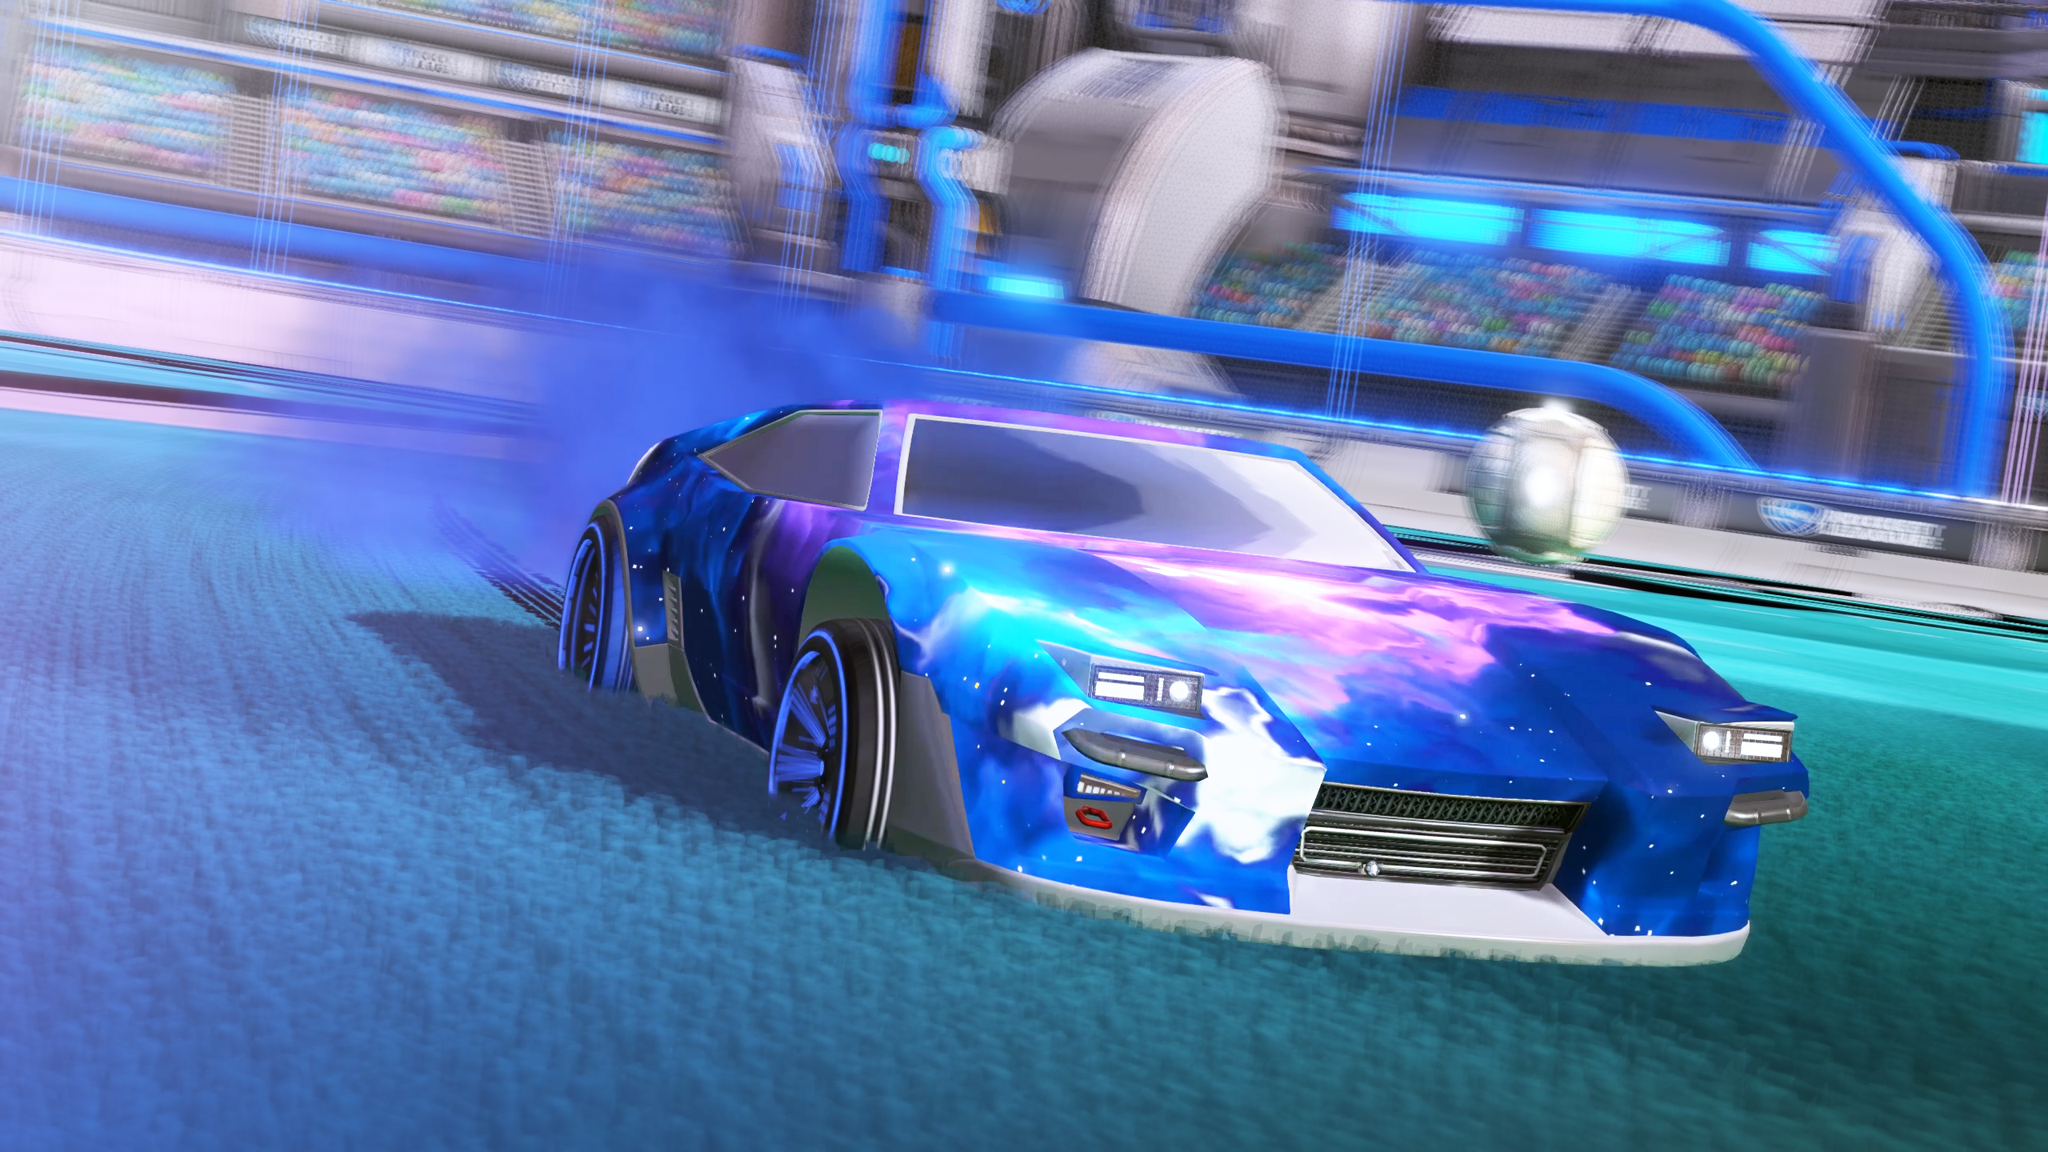 Rl Garage On Twitter Our Tw Interstellar Giveaway Has Ended Winners Will Be Contacted Shortly Thanks For Participating